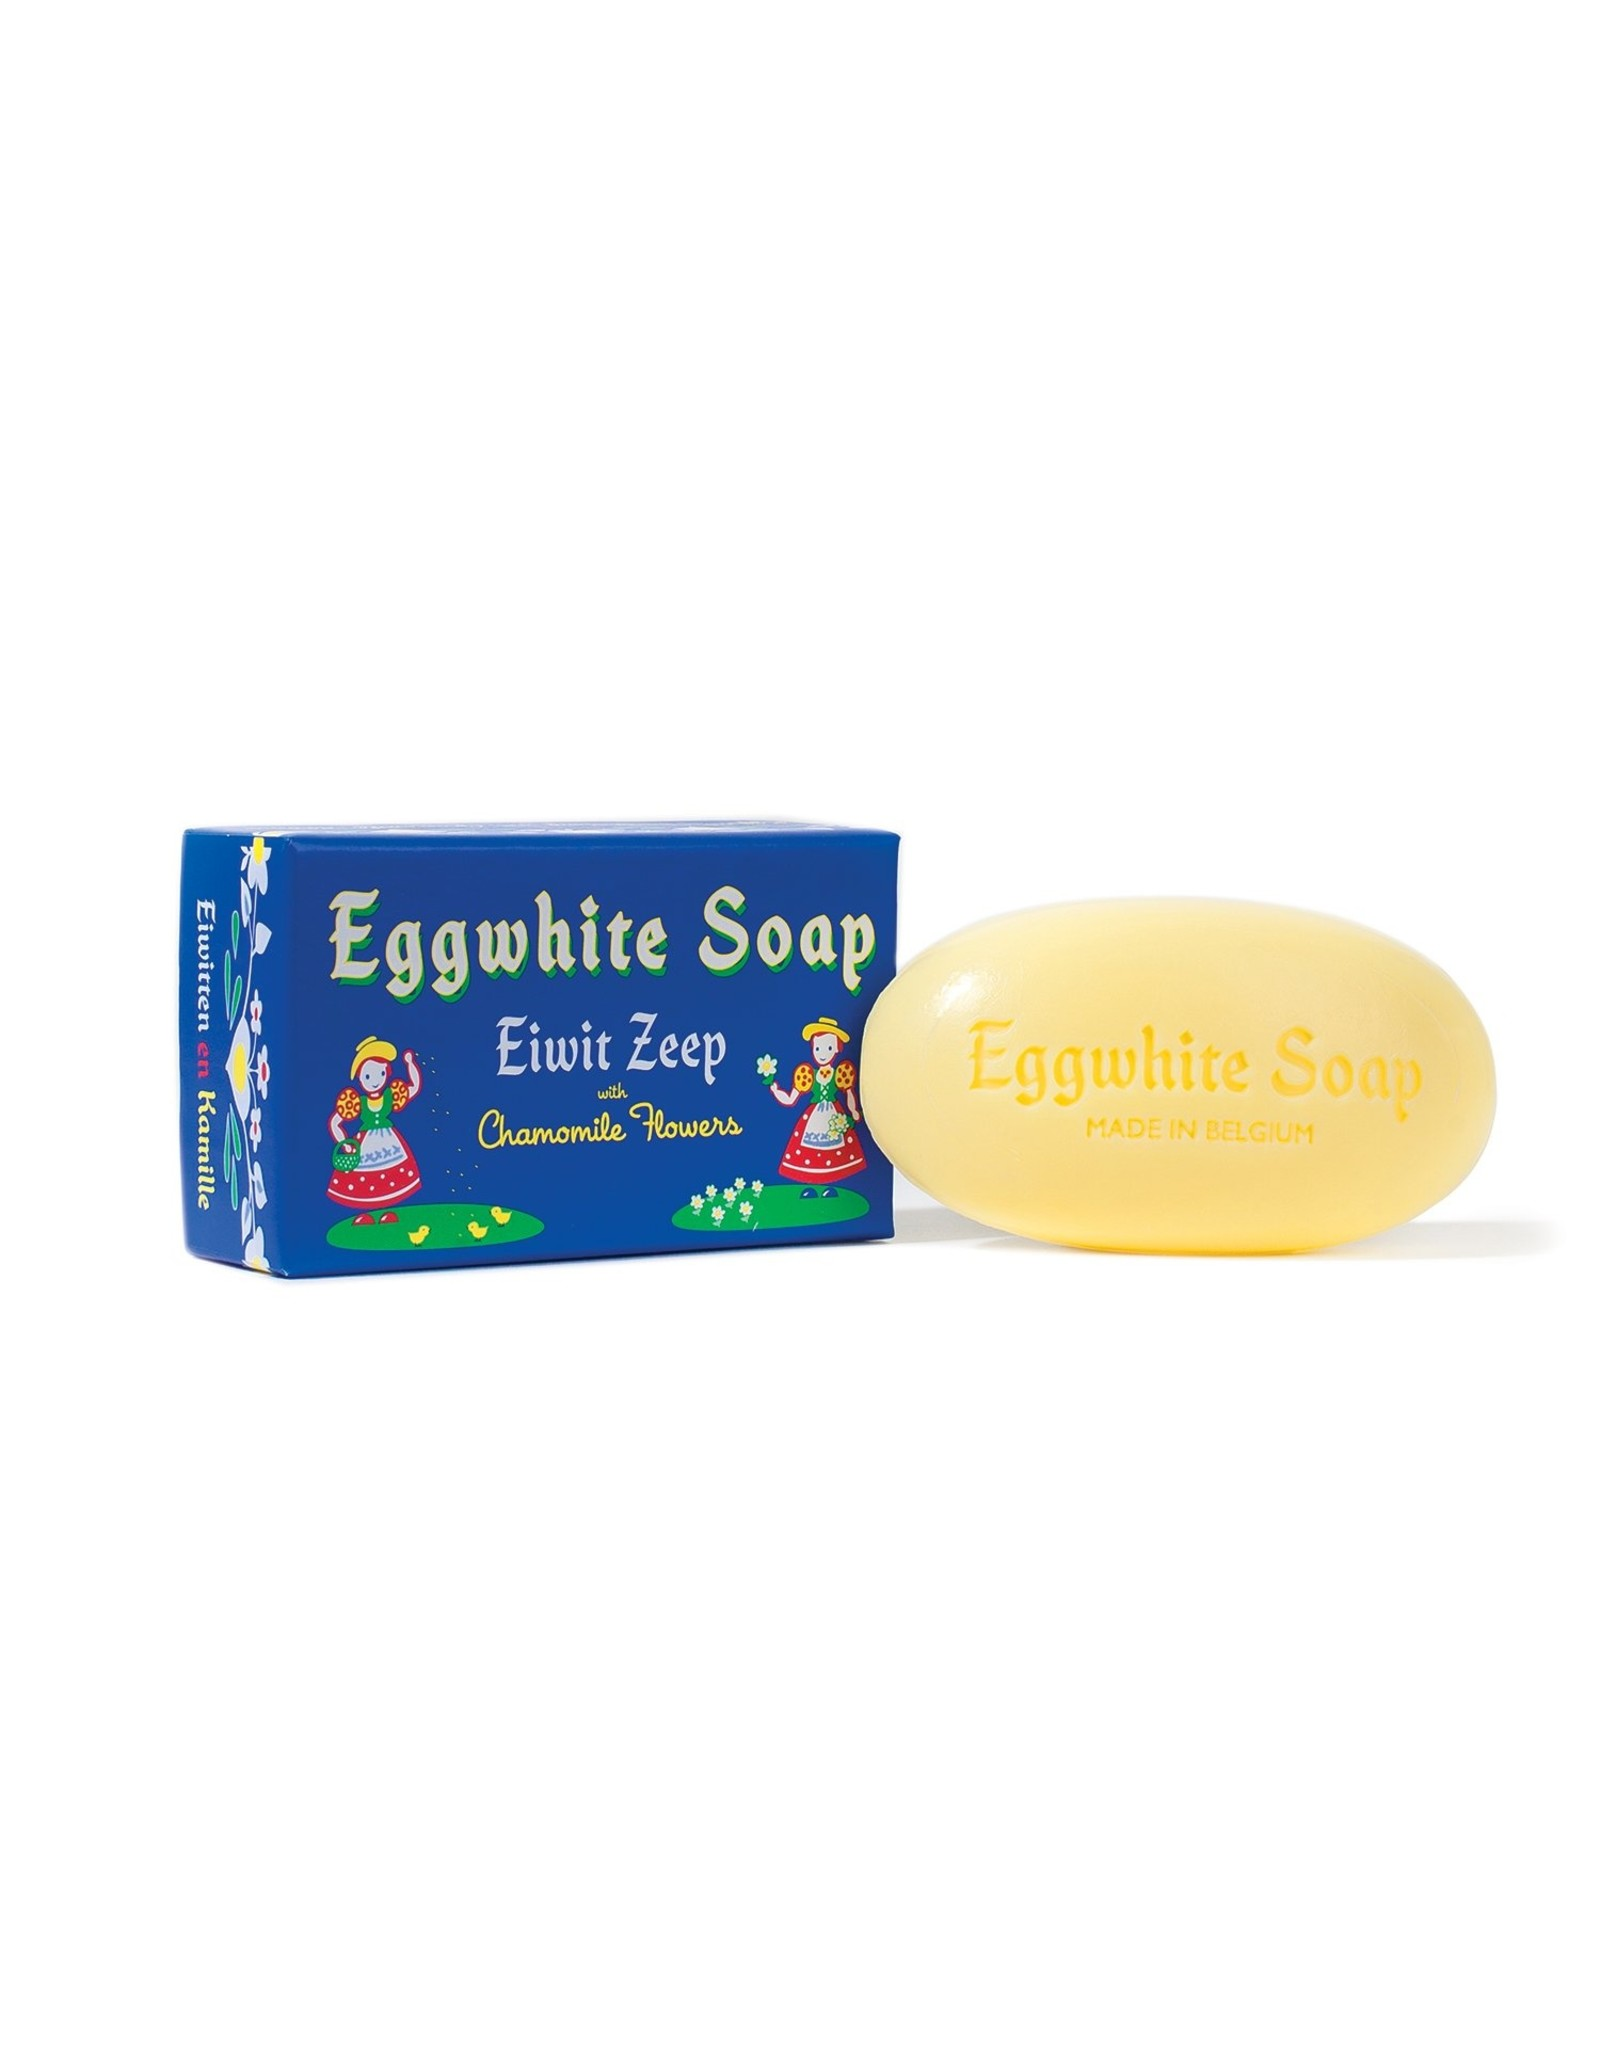 Eggwhite and Chamomile Flower Soap